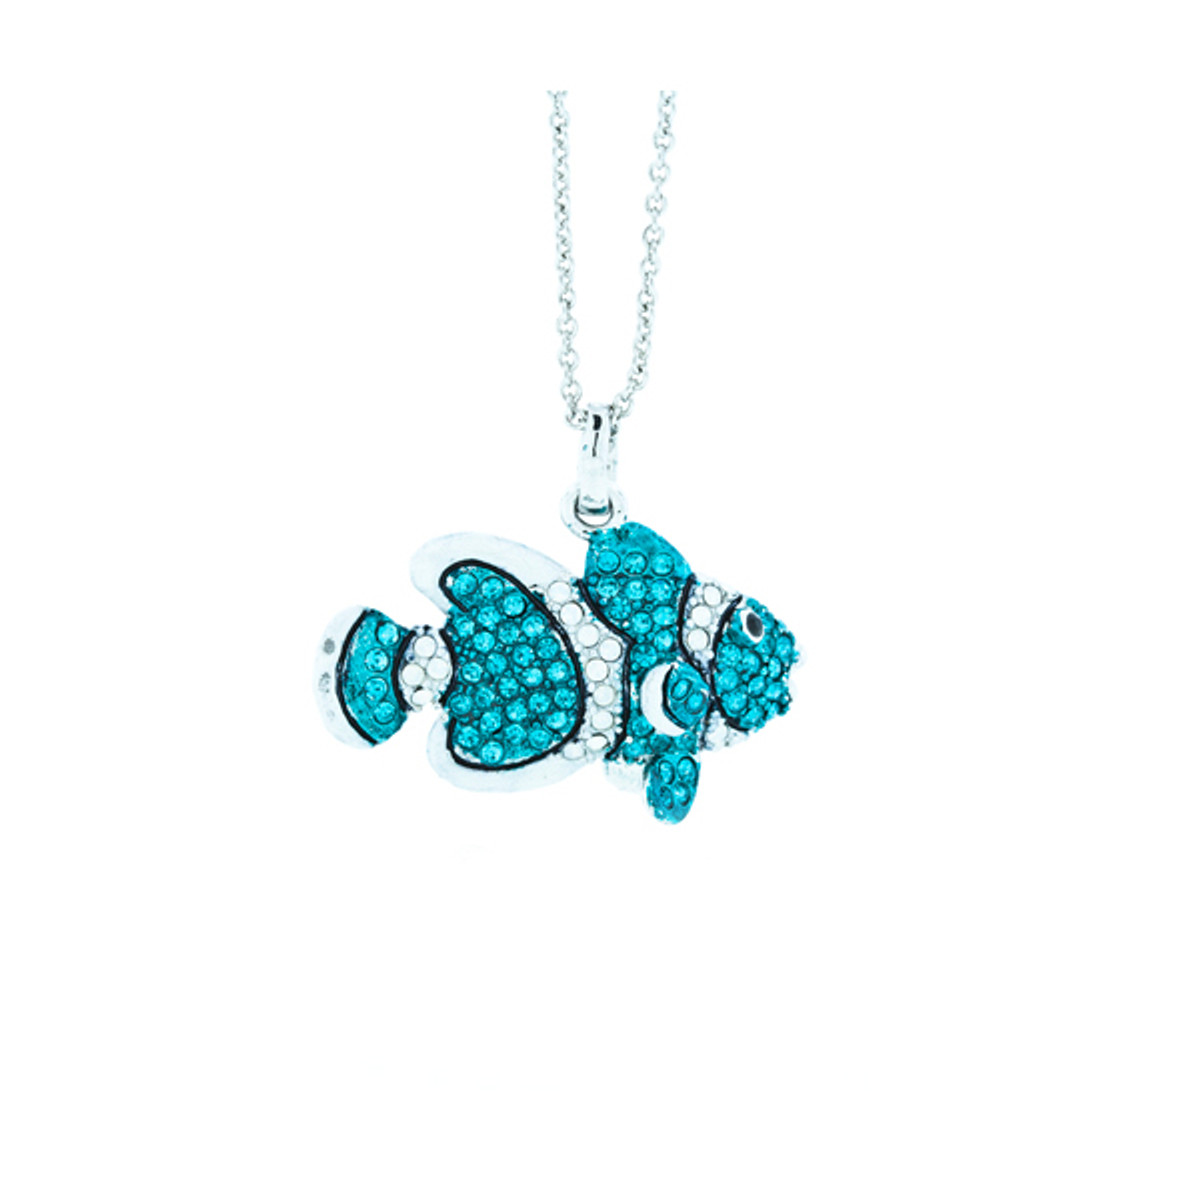 A Beautiful Clown Fish Necklace Blue Necklace From Andrew Hamilton Crawford Jewelry